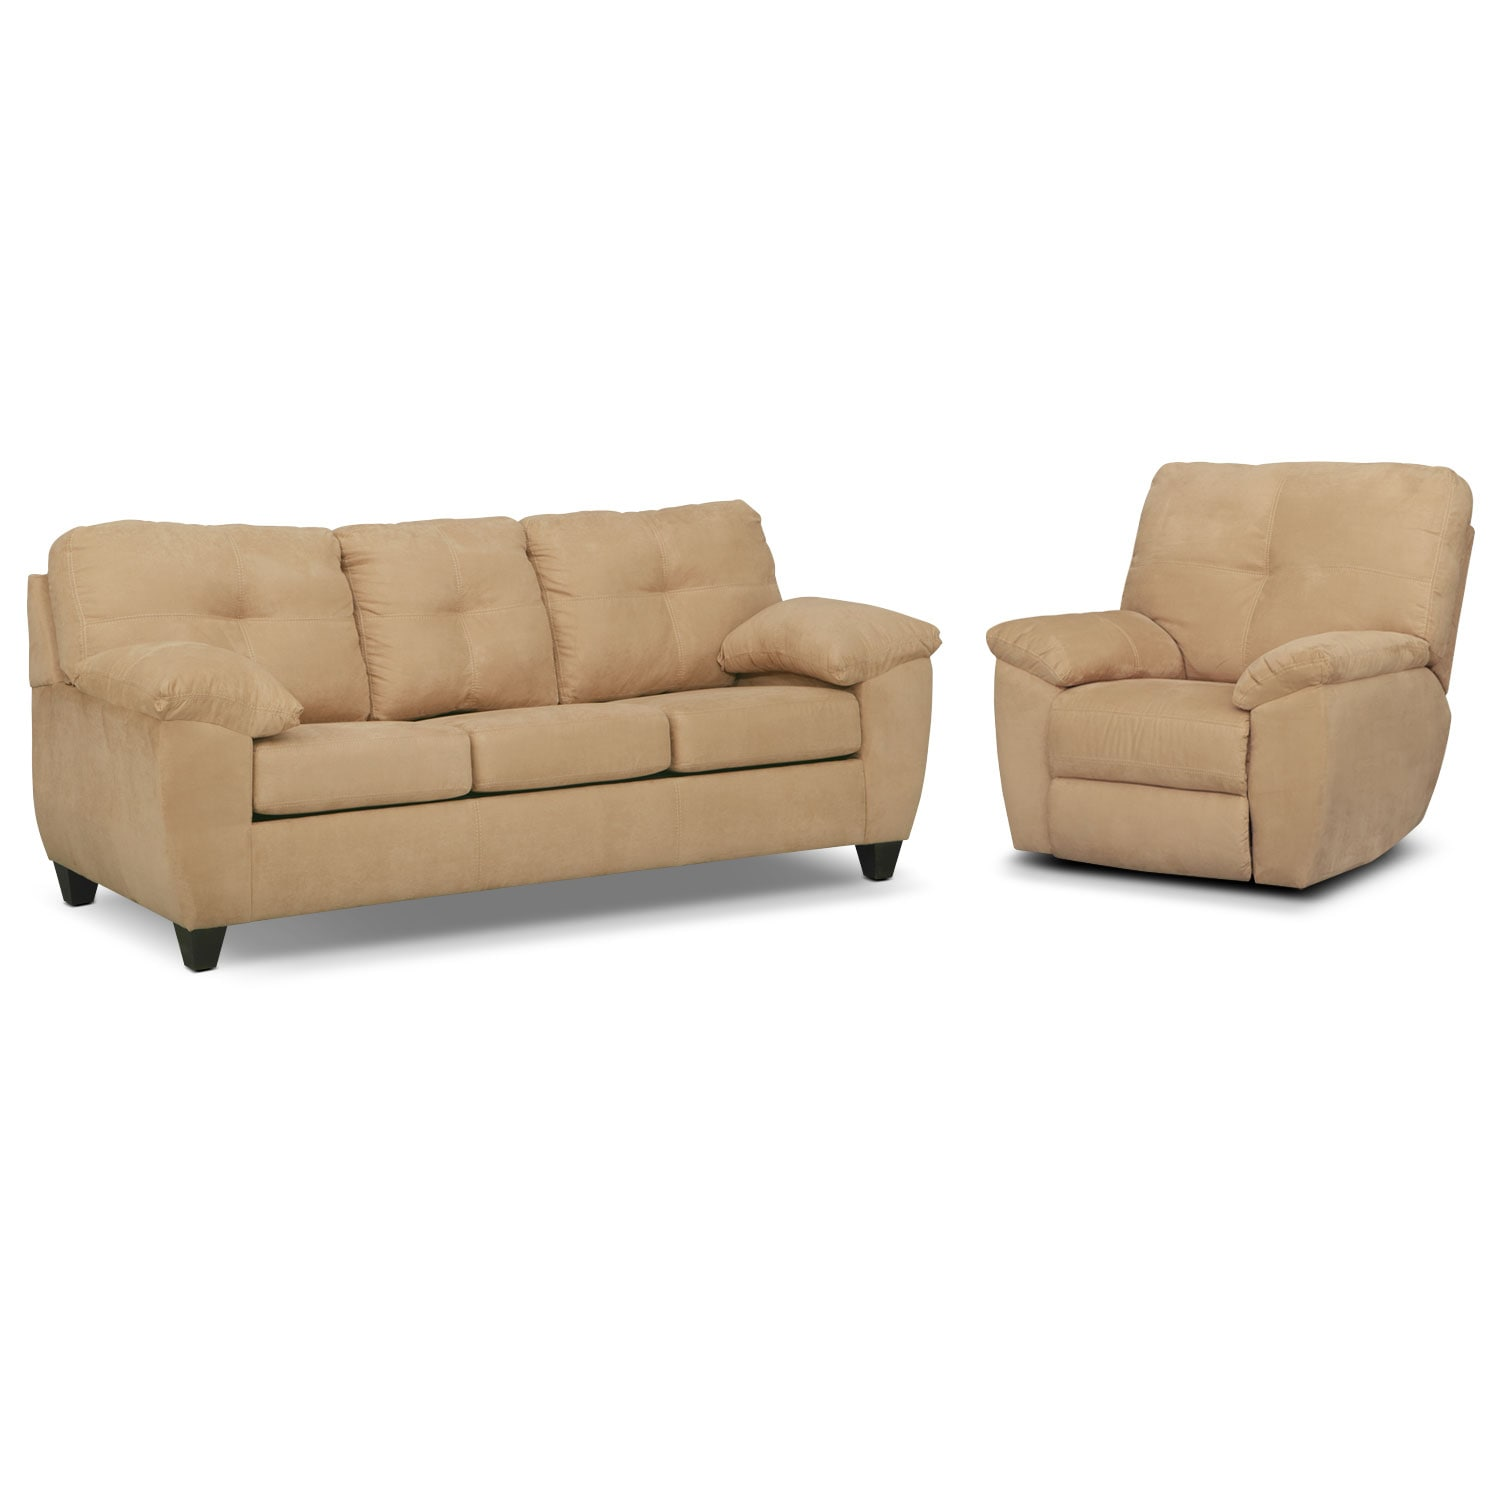 Rialto Sofa and Glider Recliner Set - Camel